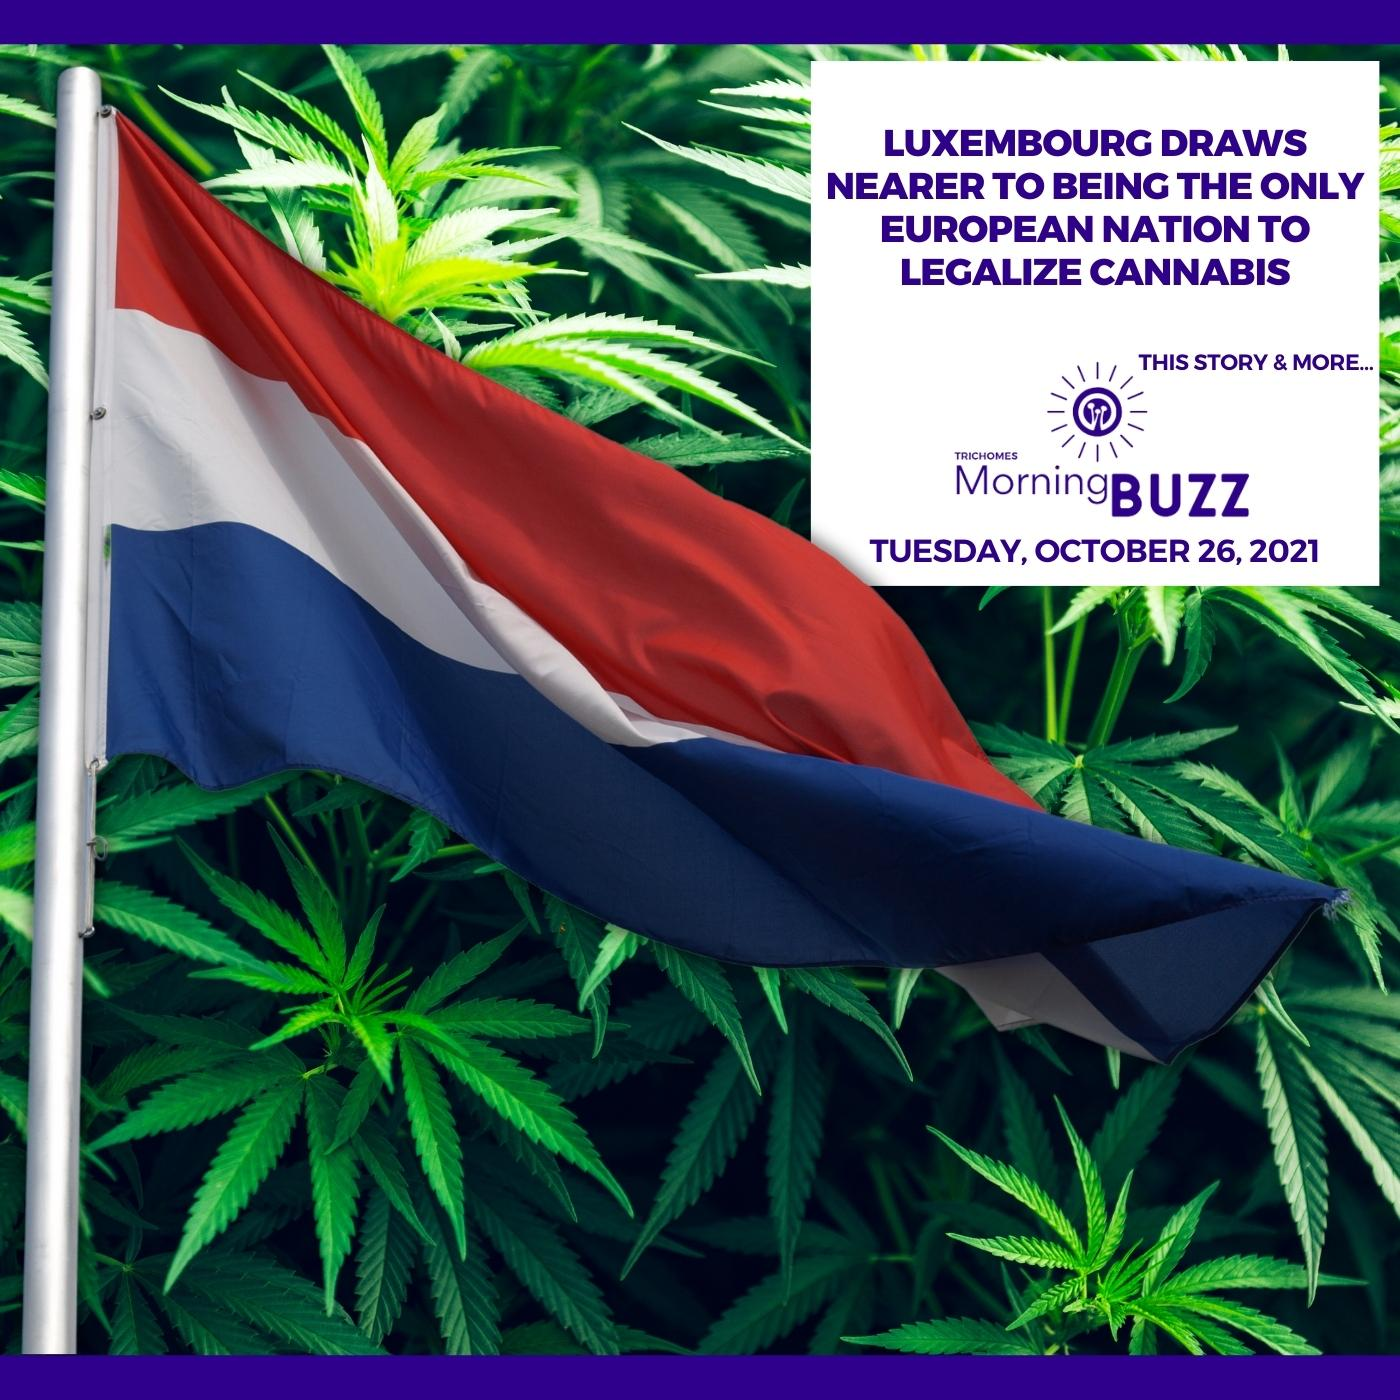 Luxembourg Draws Nearer To Being The Only European Nation To Legalize Cannabis show art